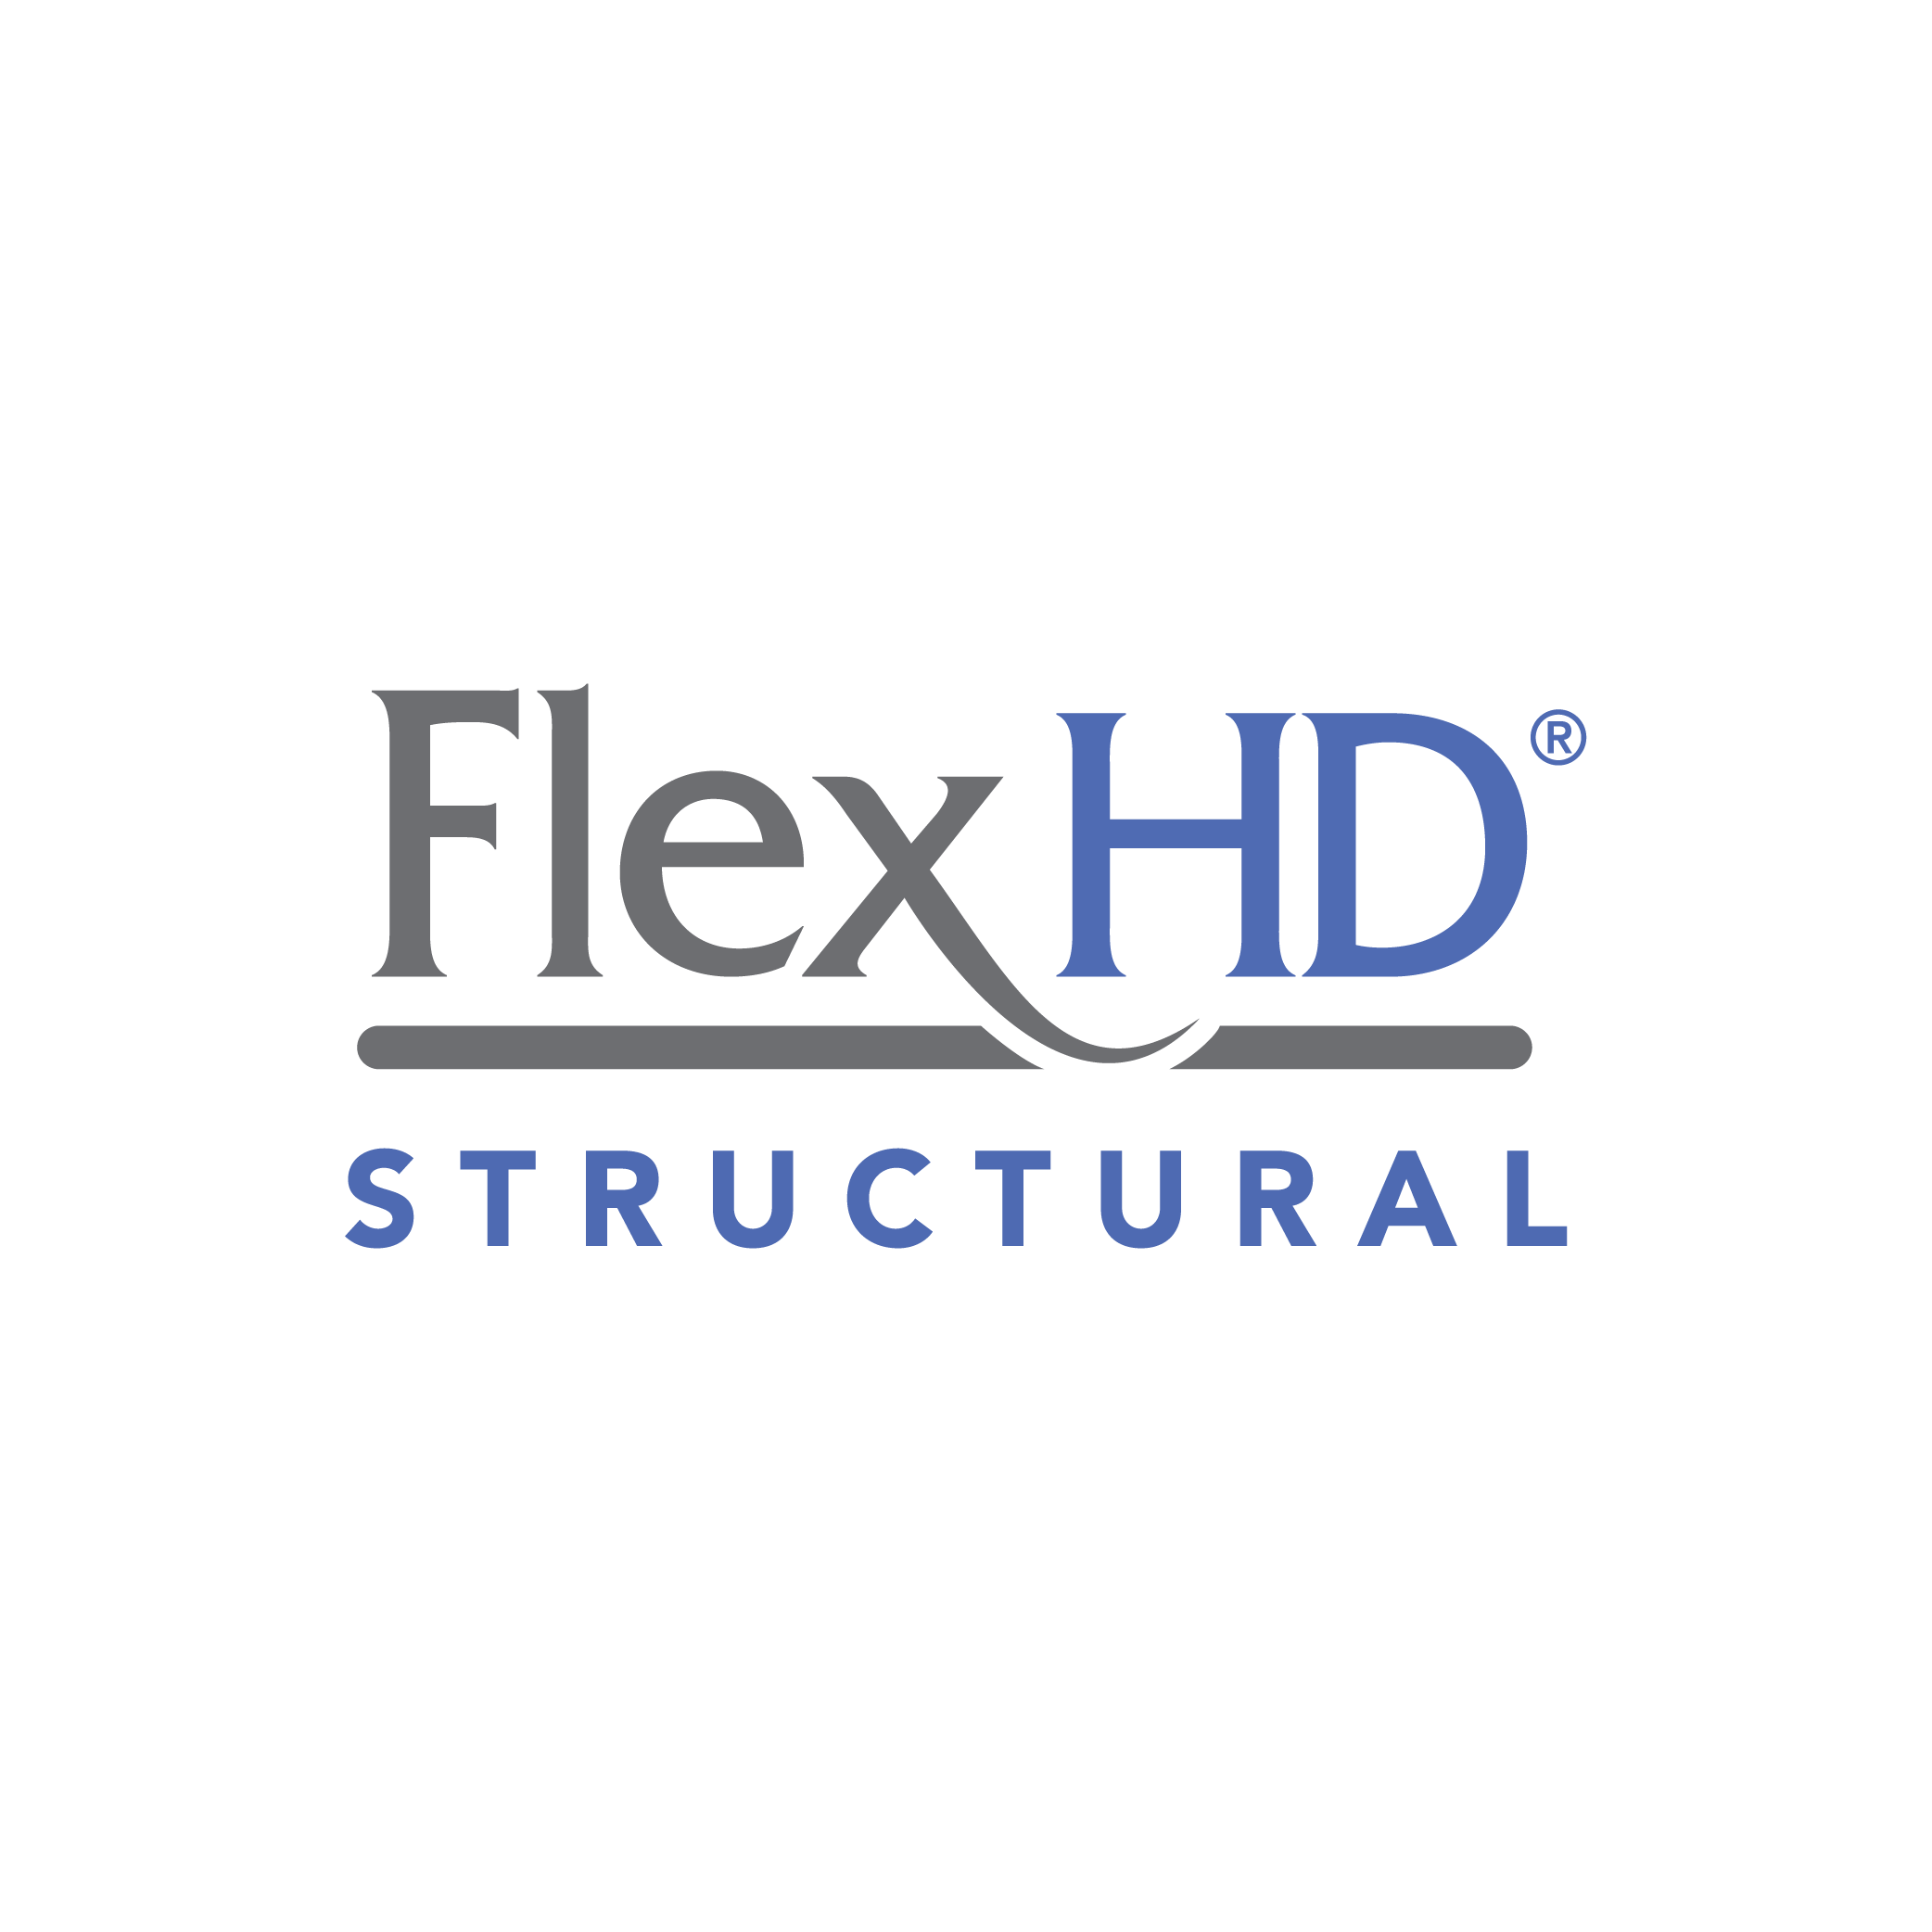 FlexHD® STRUCTURAL, Acellular Hydrated Dermis